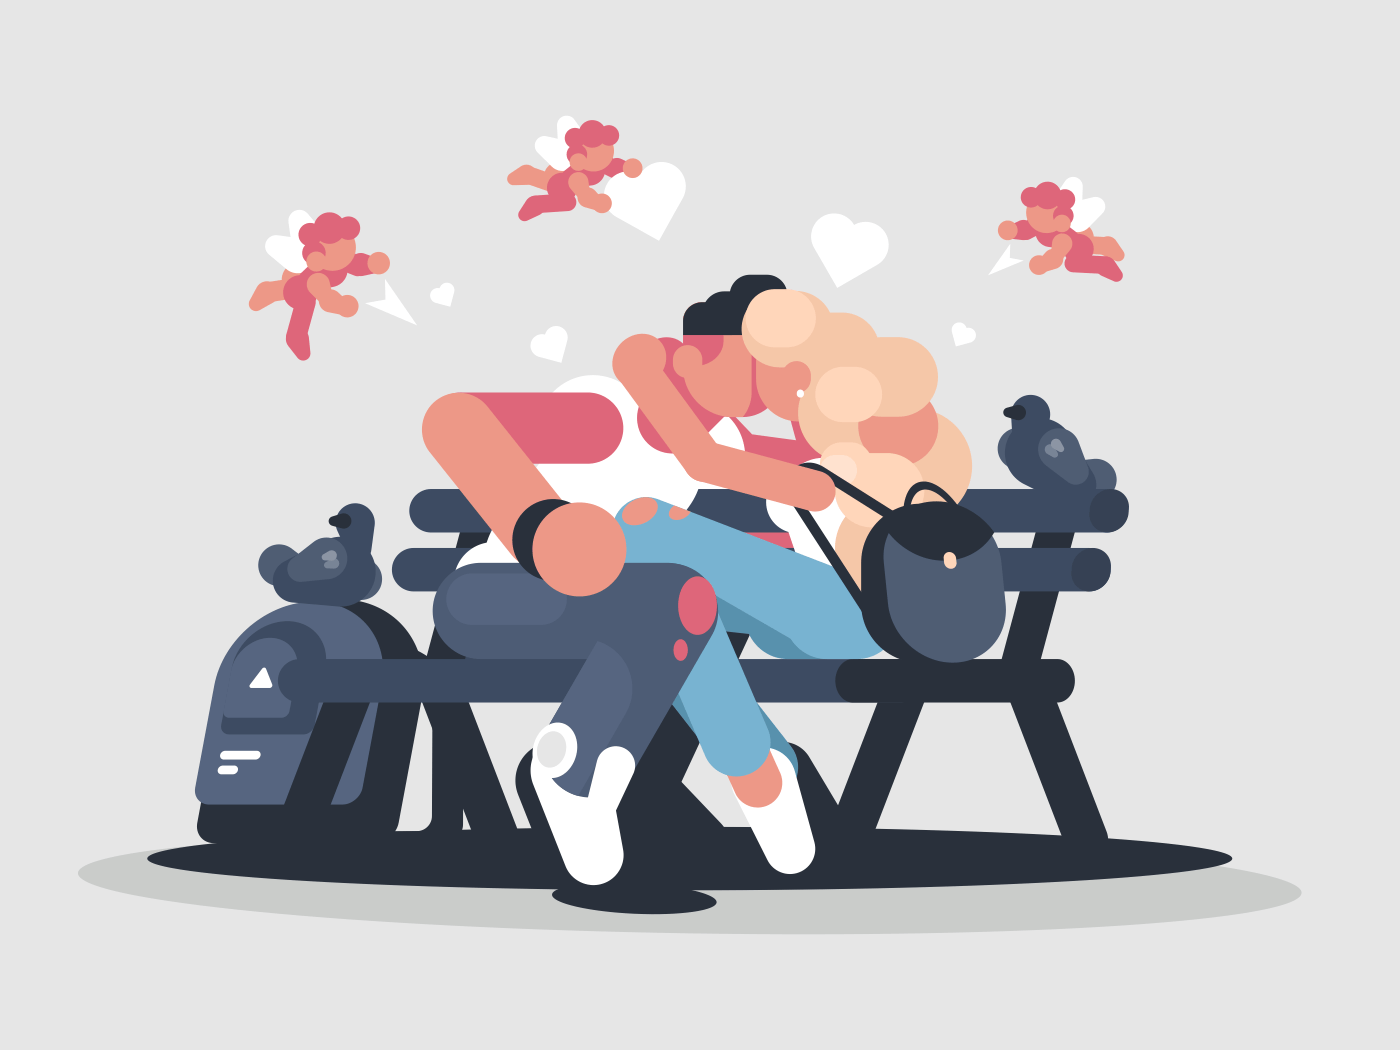 Guy with girl kissing in park on bench. Vector illustration